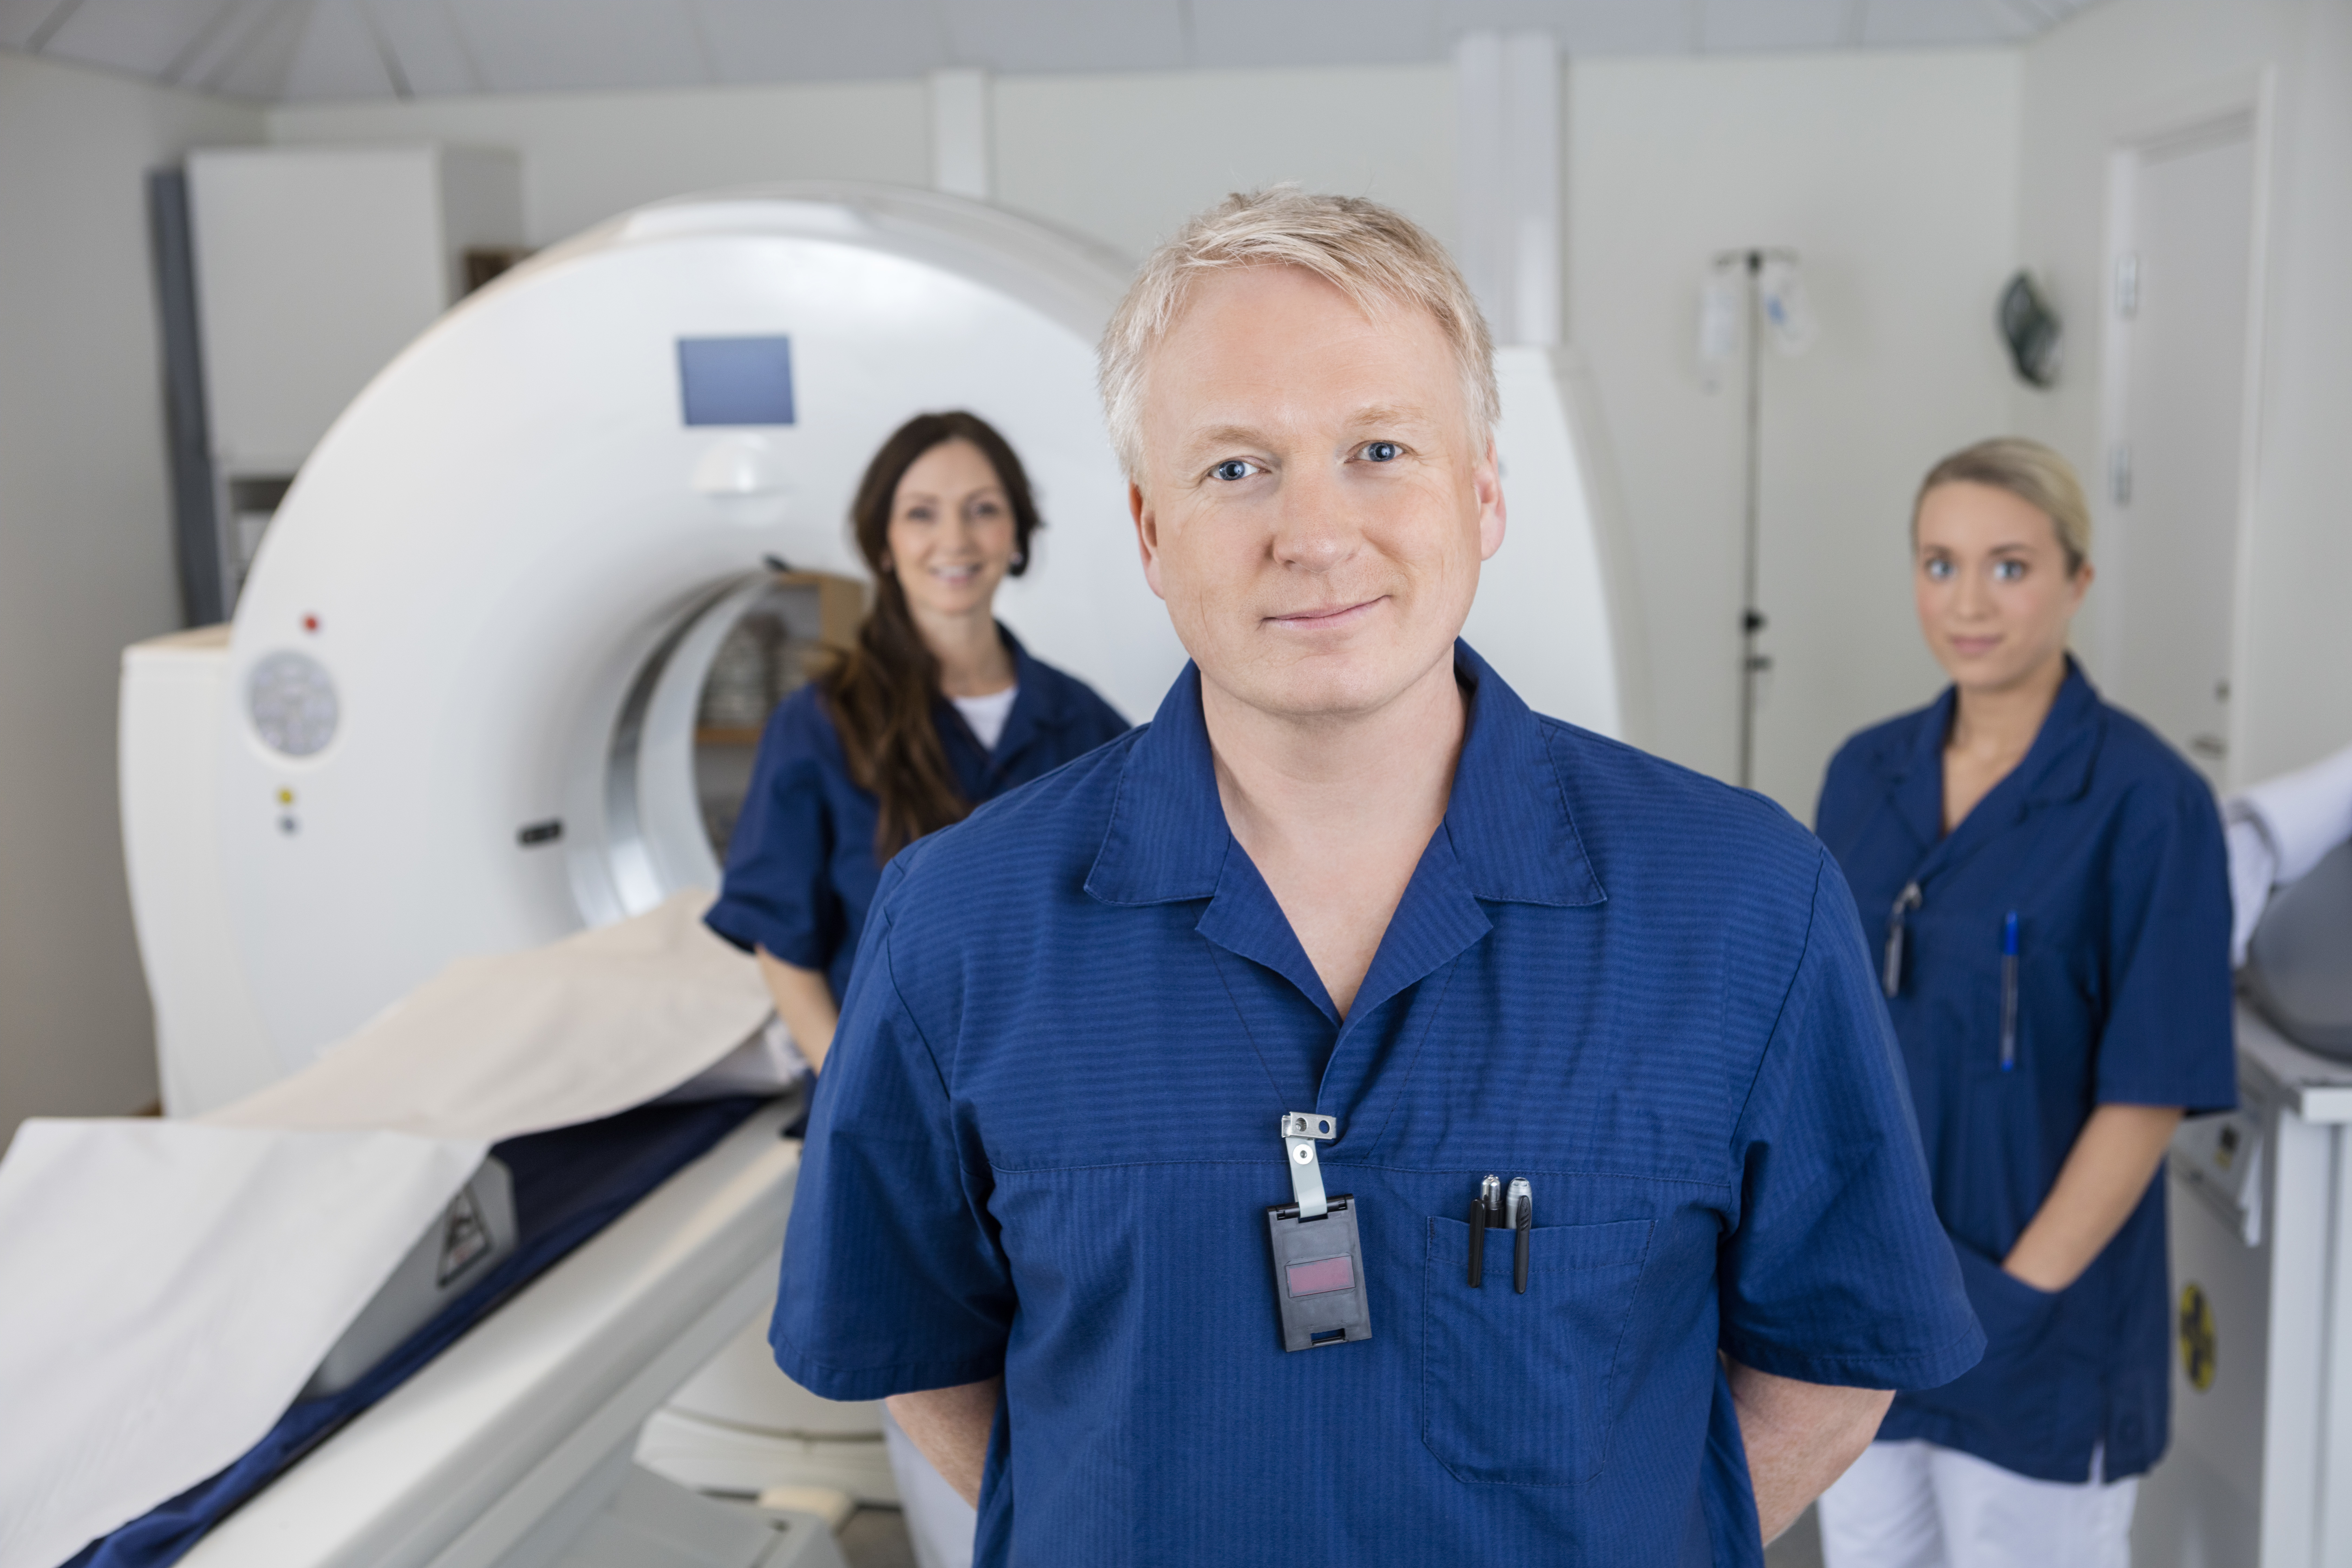 Portrait of confident male radiologist with colleagues standing by MRI machine in hospital